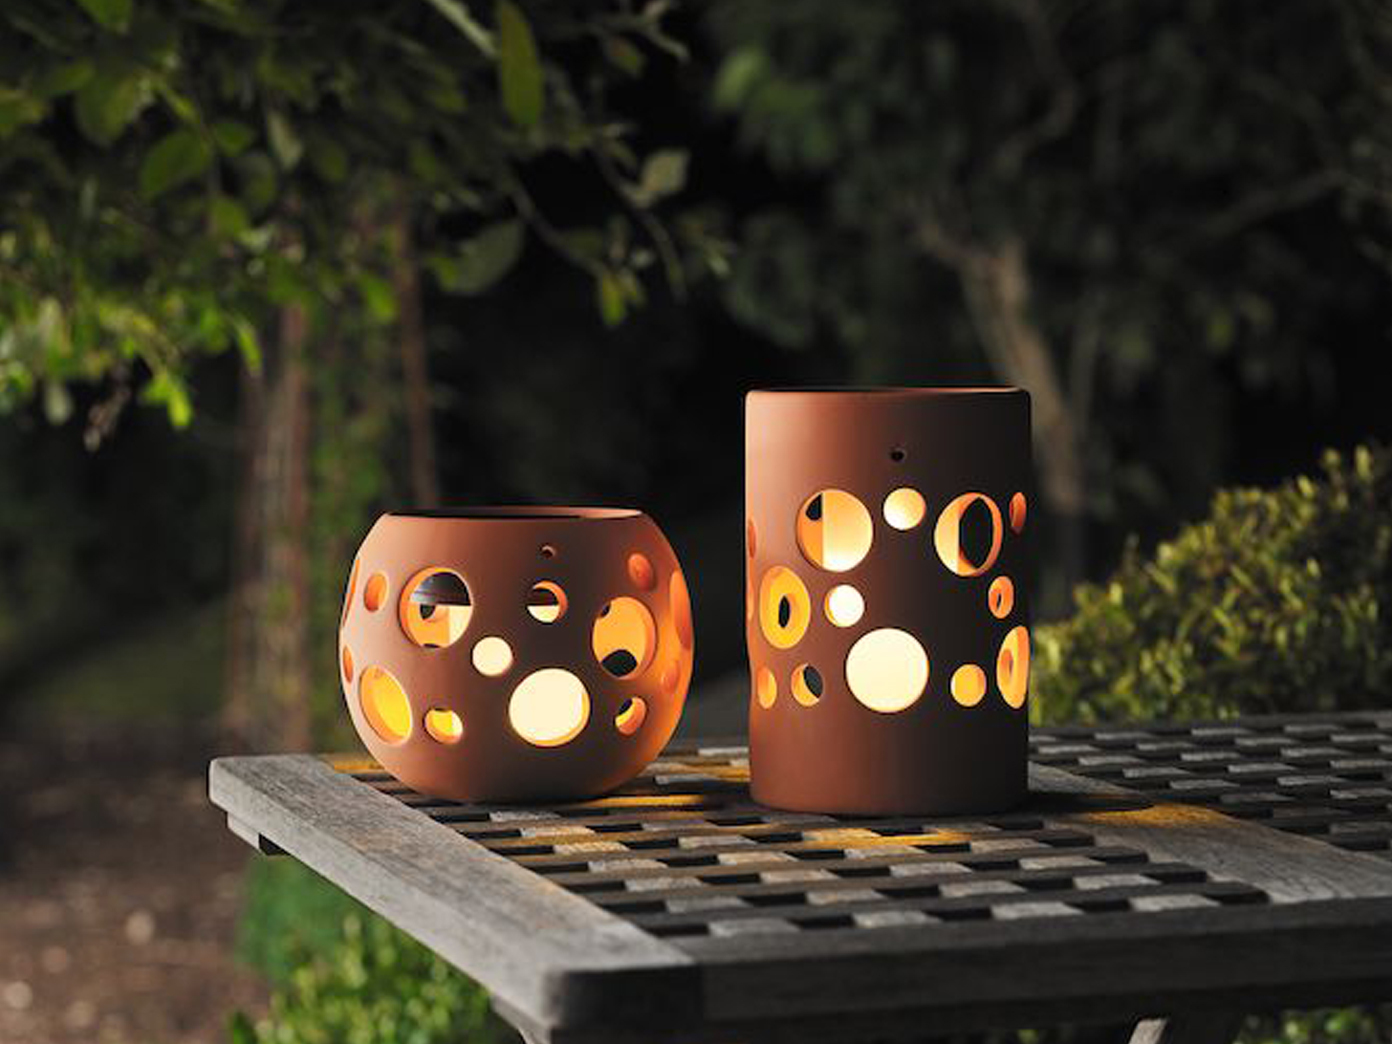 terracotta tischleuchte keramik solar led d mmerungssensor tischlampe garten 7318307800906 ebay. Black Bedroom Furniture Sets. Home Design Ideas